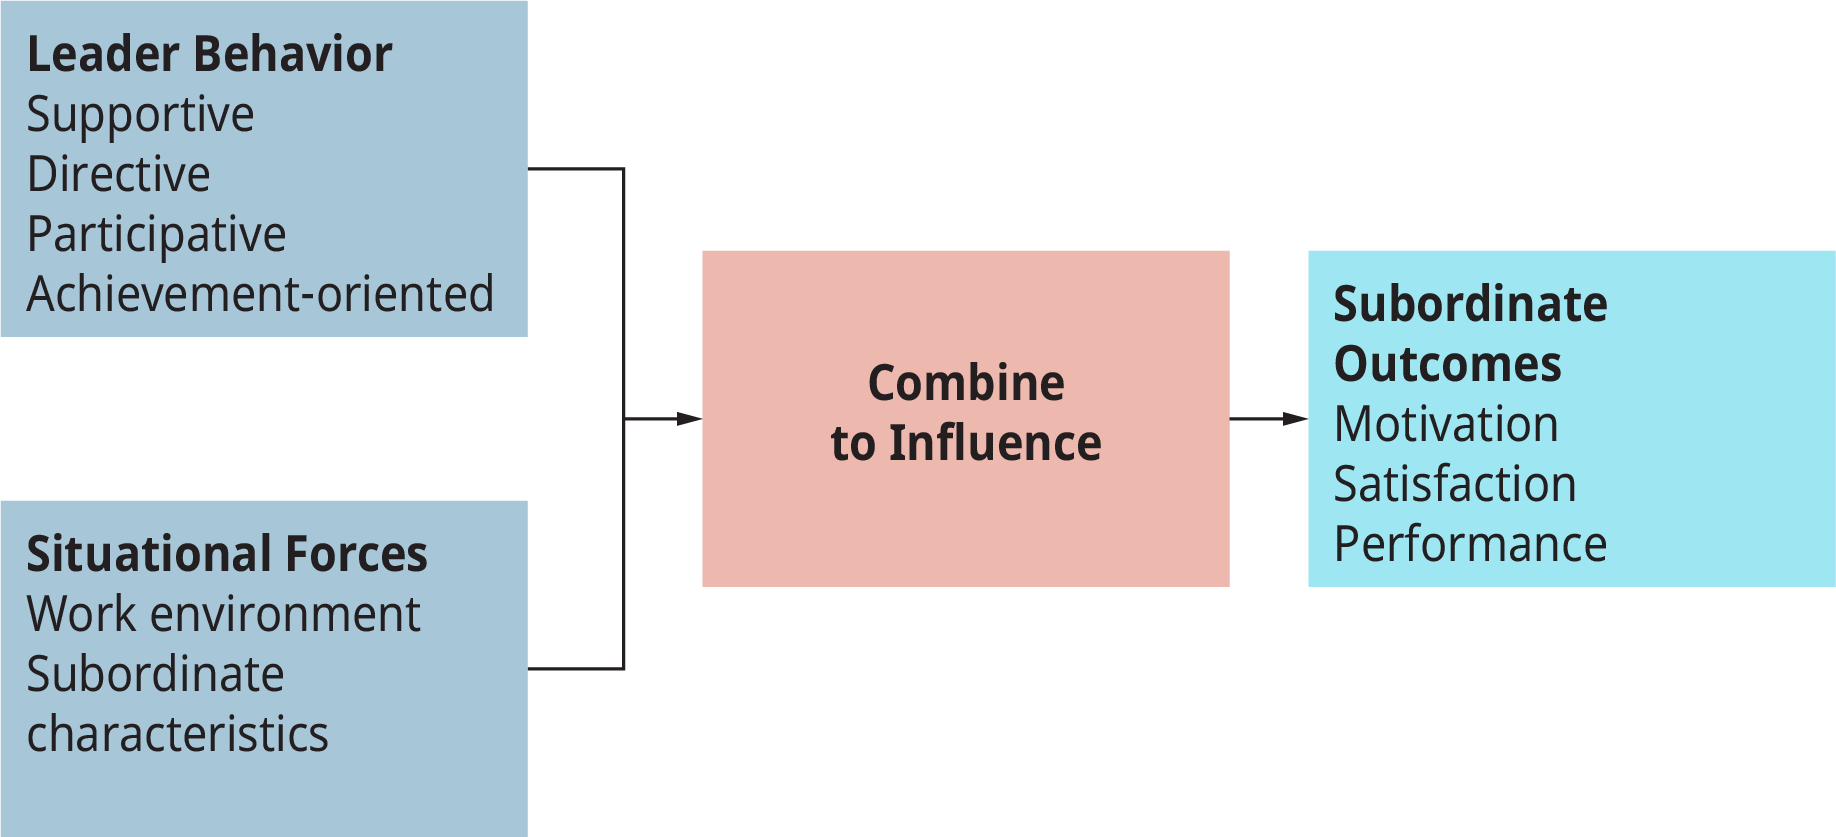 A diagram illustrates the path-goal leadership model based on leadership behavior and situational forces